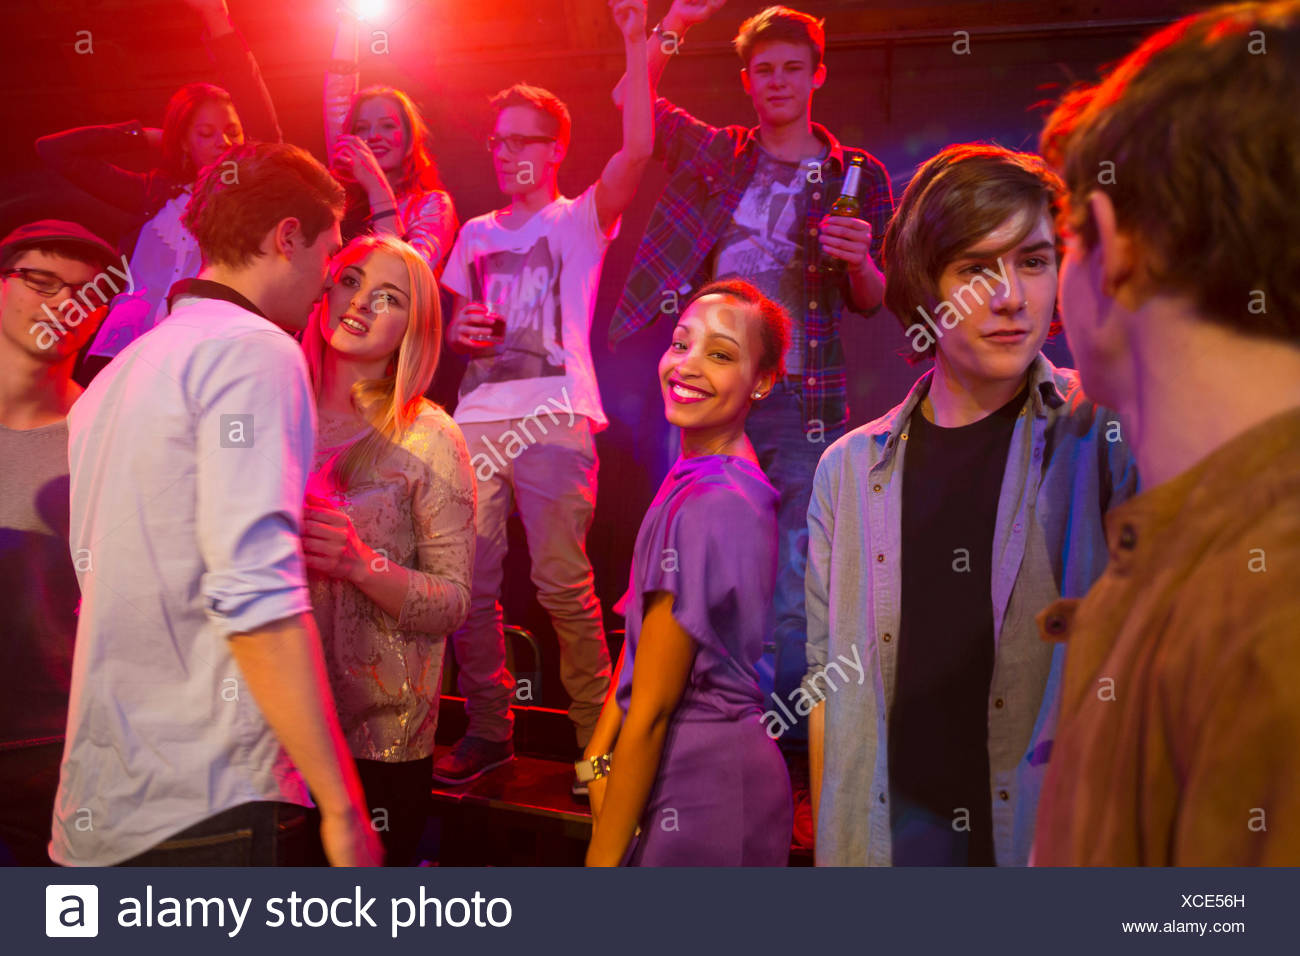 Group of people at party, dancing and smiling - Stock Image